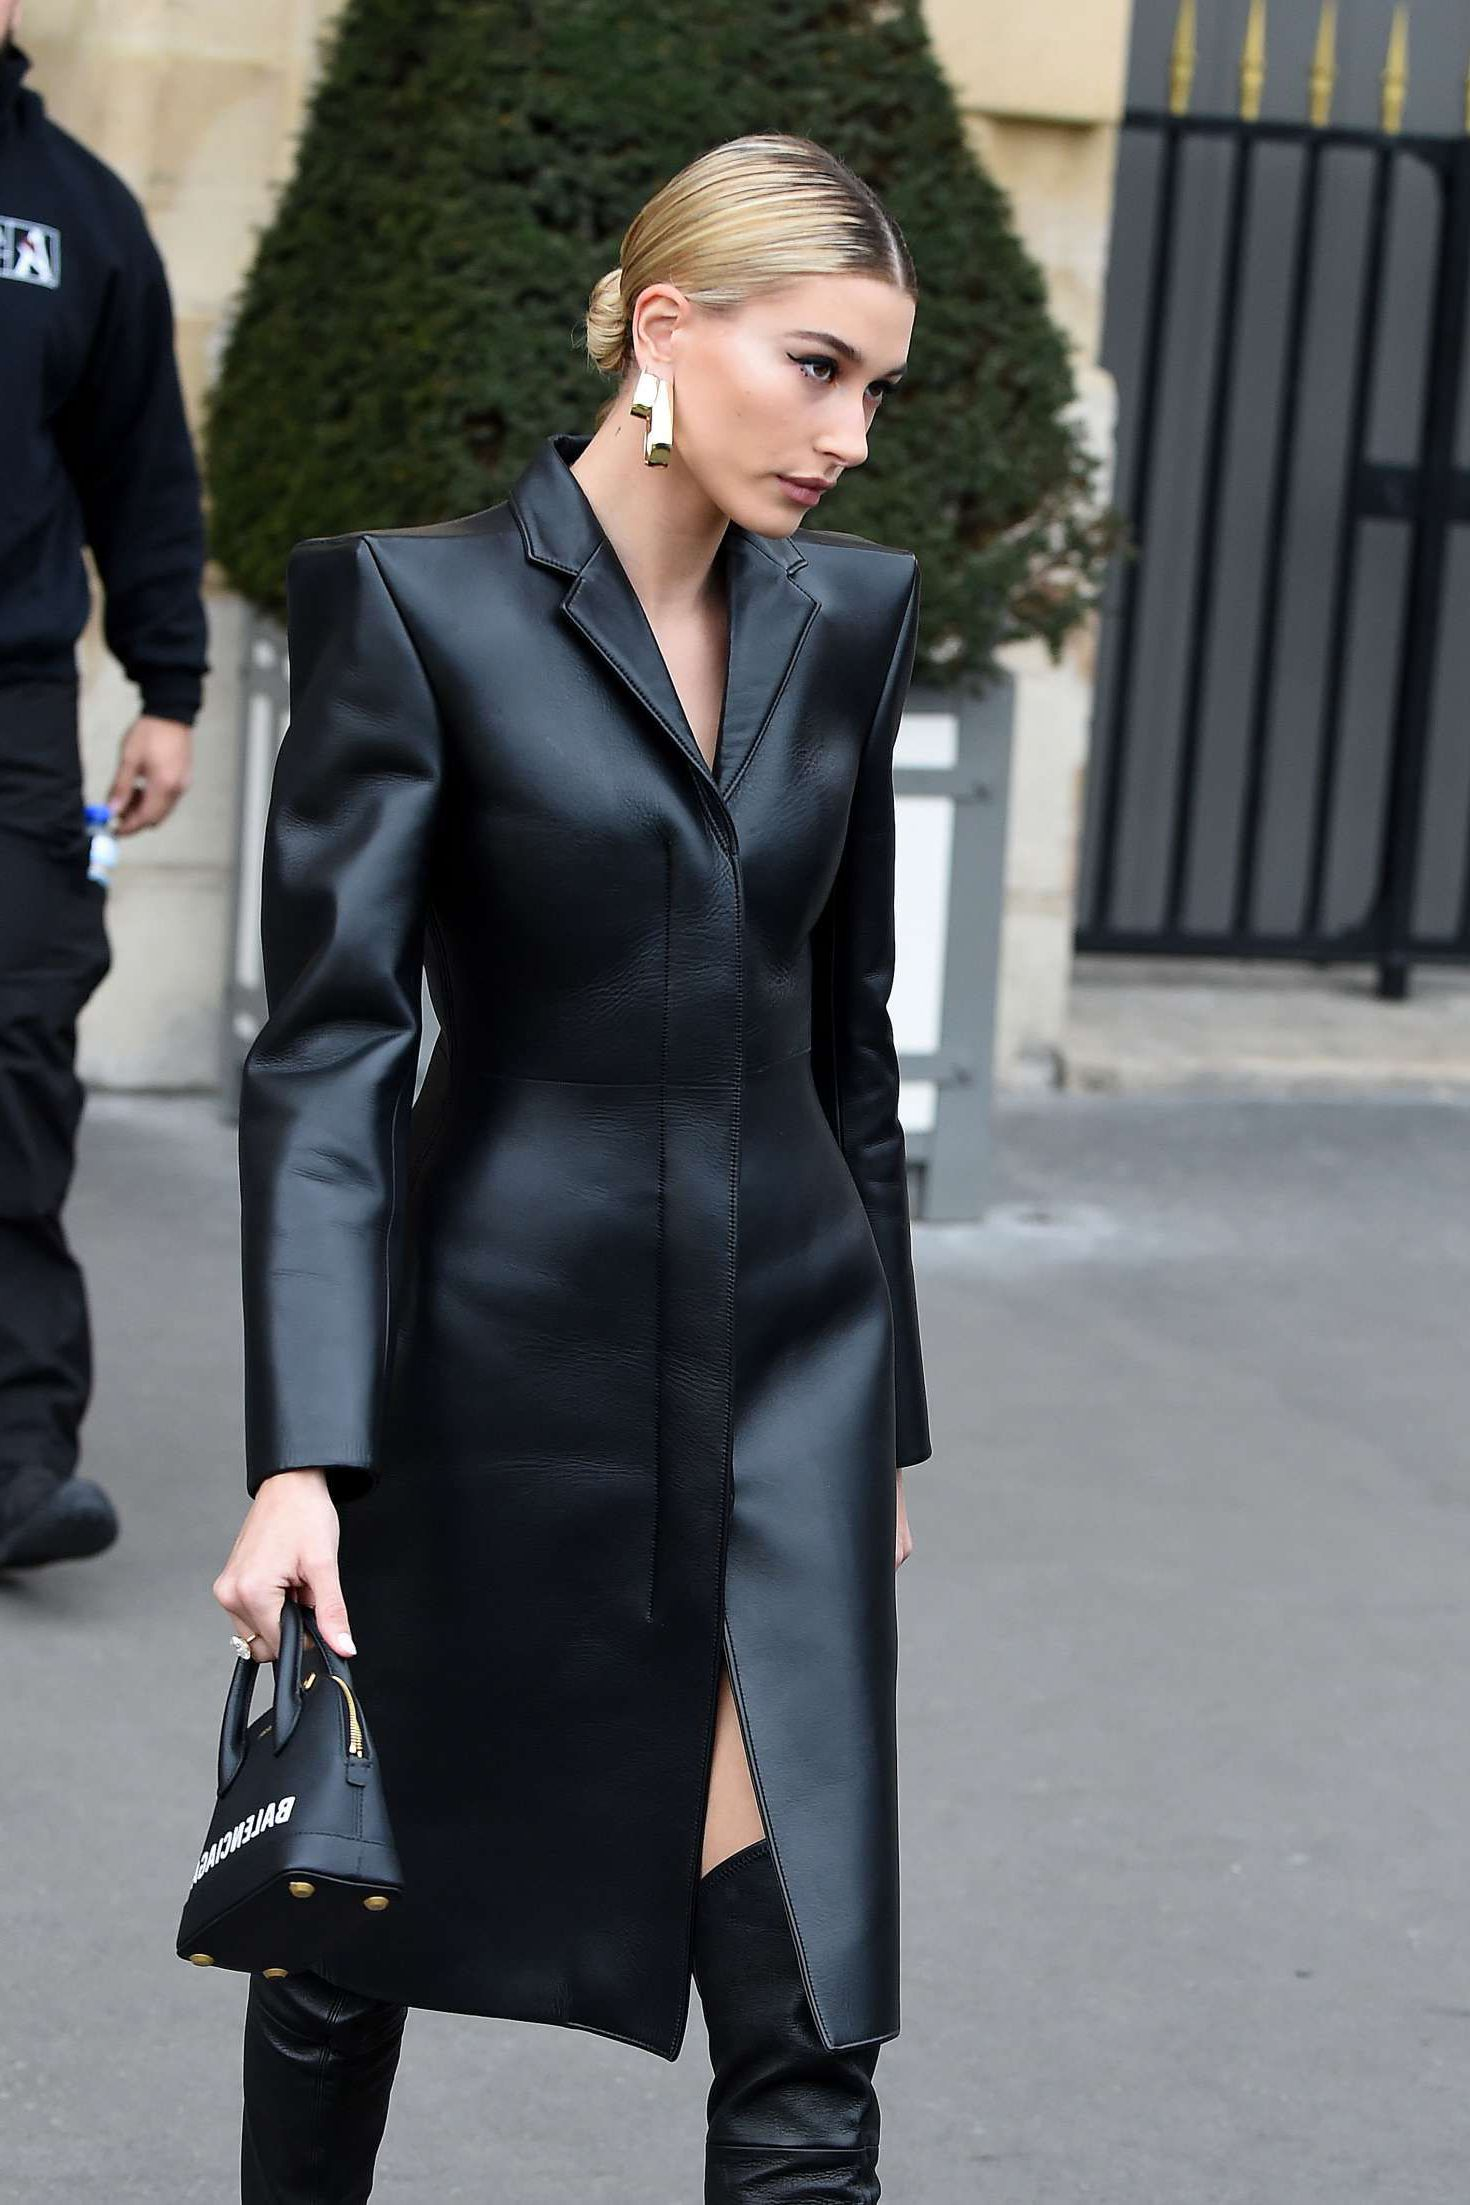 New Cars Com >> Hailey Baldwin in black leather coatl in Paris, March 2019 ...